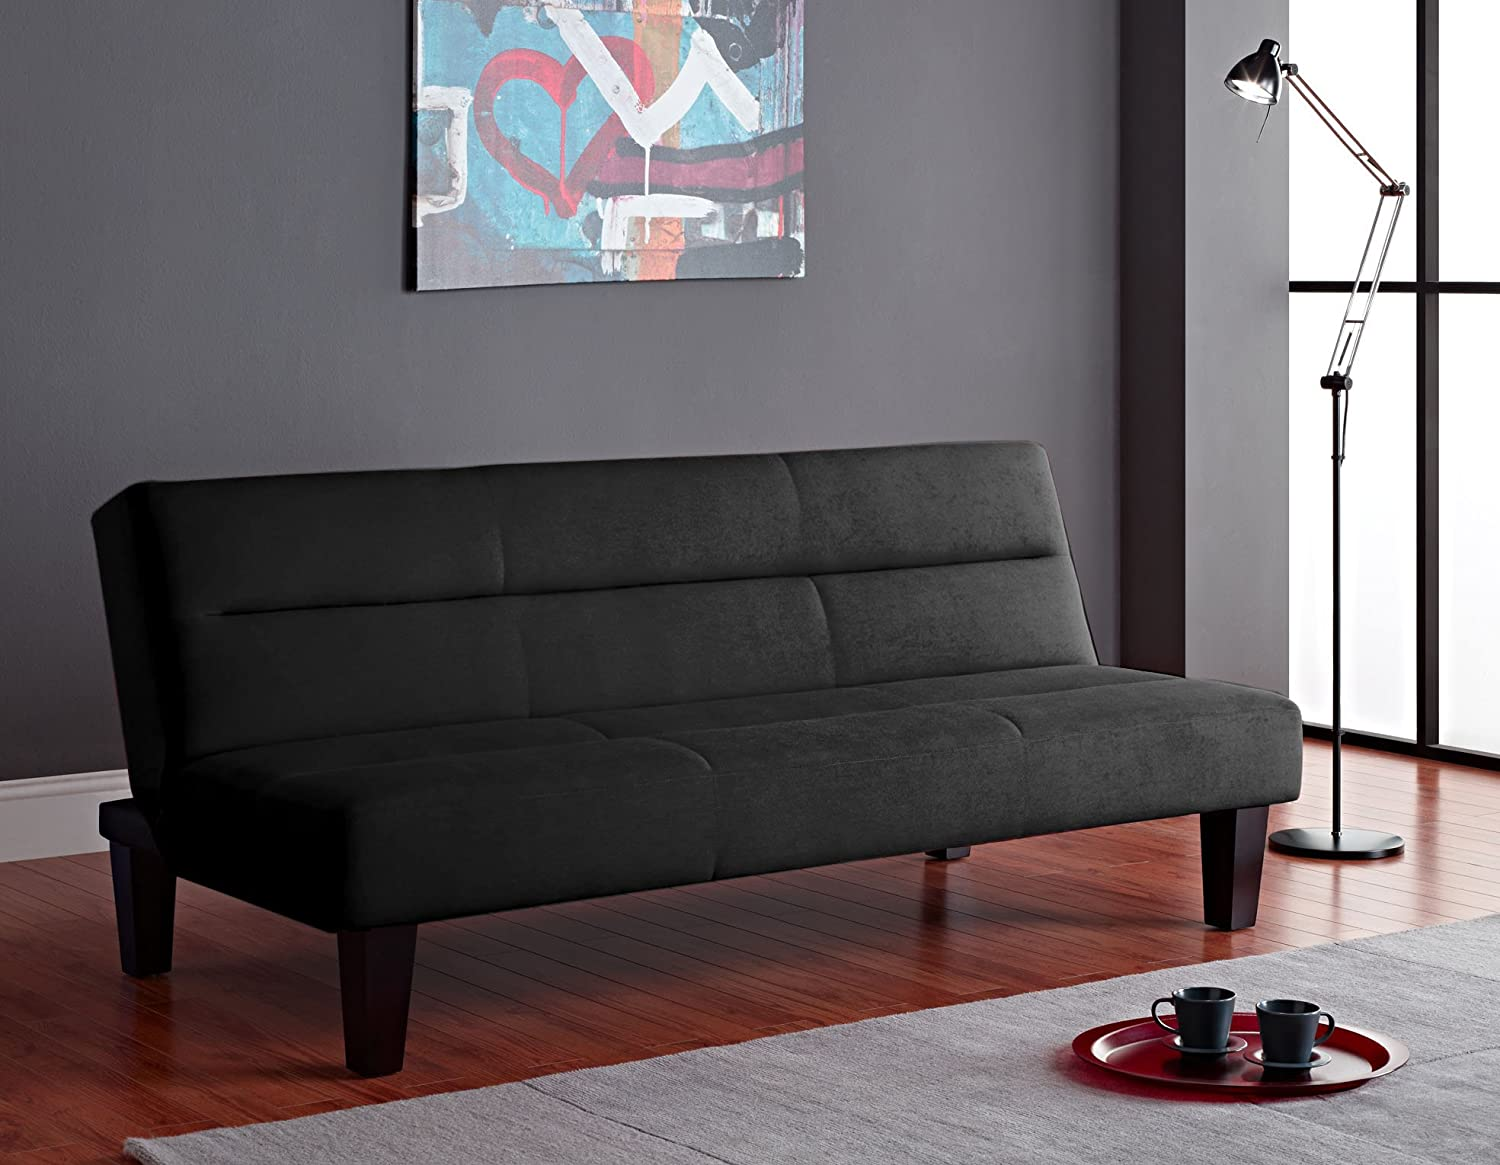 amazoncom dorel home products kebo futon black kitchen dining amazon com dorel home products kebo futon black kitchen amp dining aria futon sofa bed